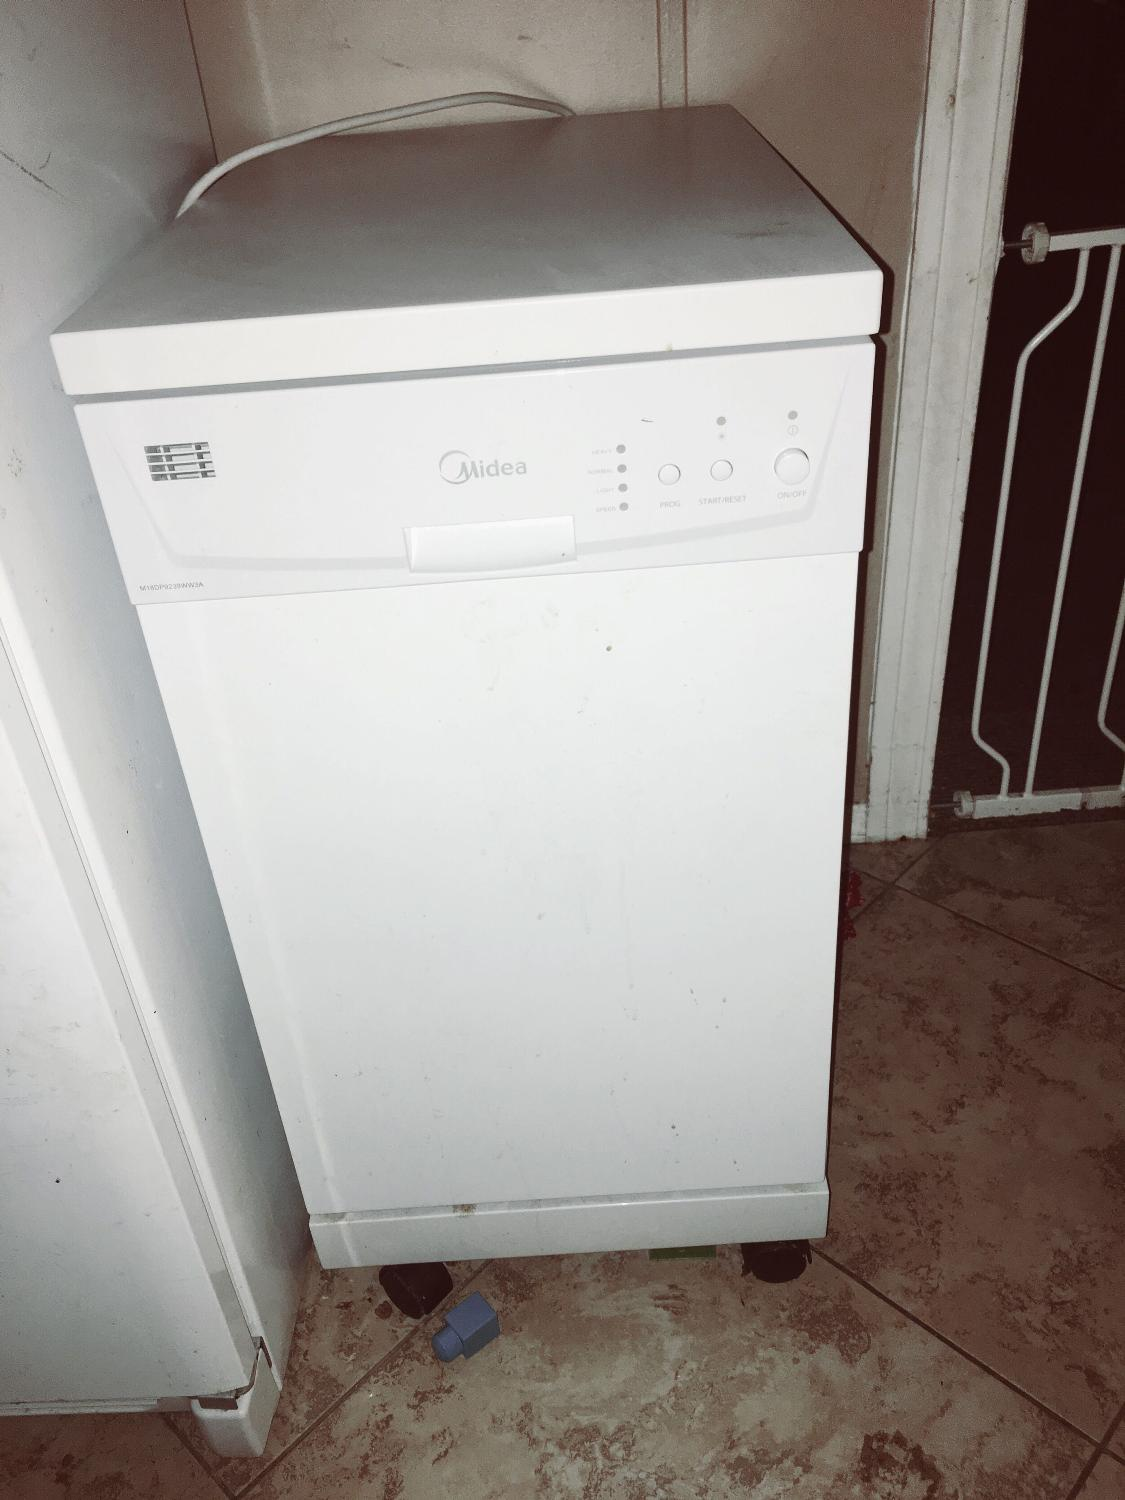 how to connect danby portable dishwasher